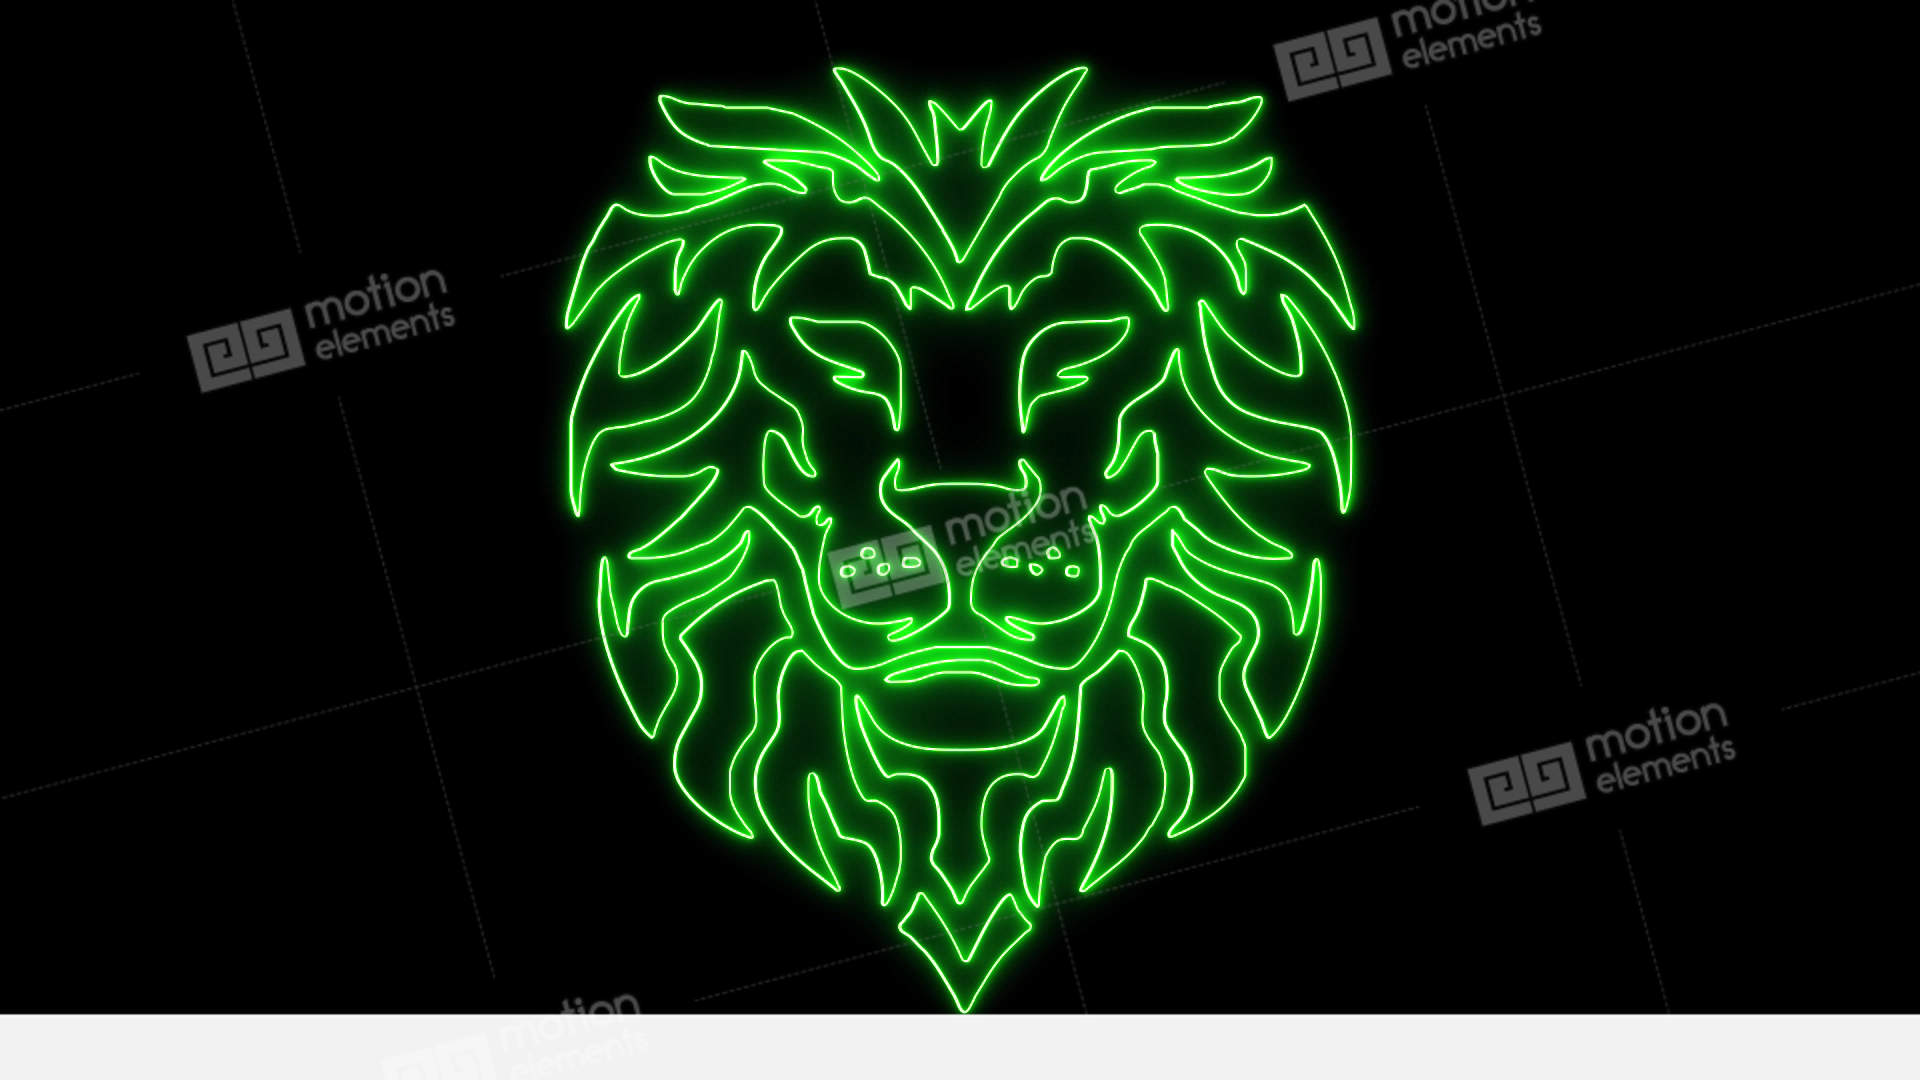 Amazing Wallpaper Logo Lion - me11490568-green-neon-lion-head-animated-logo-loopable-graphic-element-hd-a0136  Collection_784129.jpg